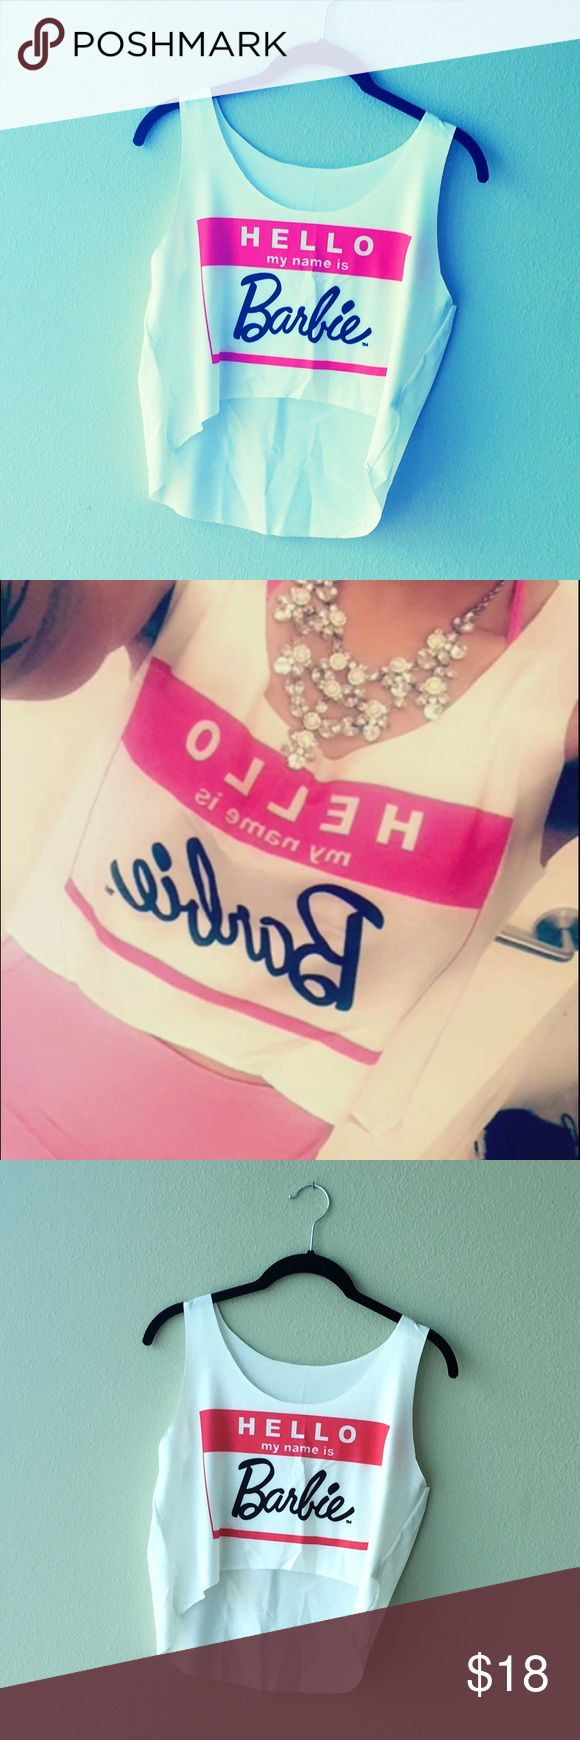 Barbie Crop Top Super cute with a great fit, one size! Hello my name is Barbie Crop top #crop #fashion #barbie #love #style #croptop #womansclothing #os #osfm #croptops #cute #girly Tops Crop Tops